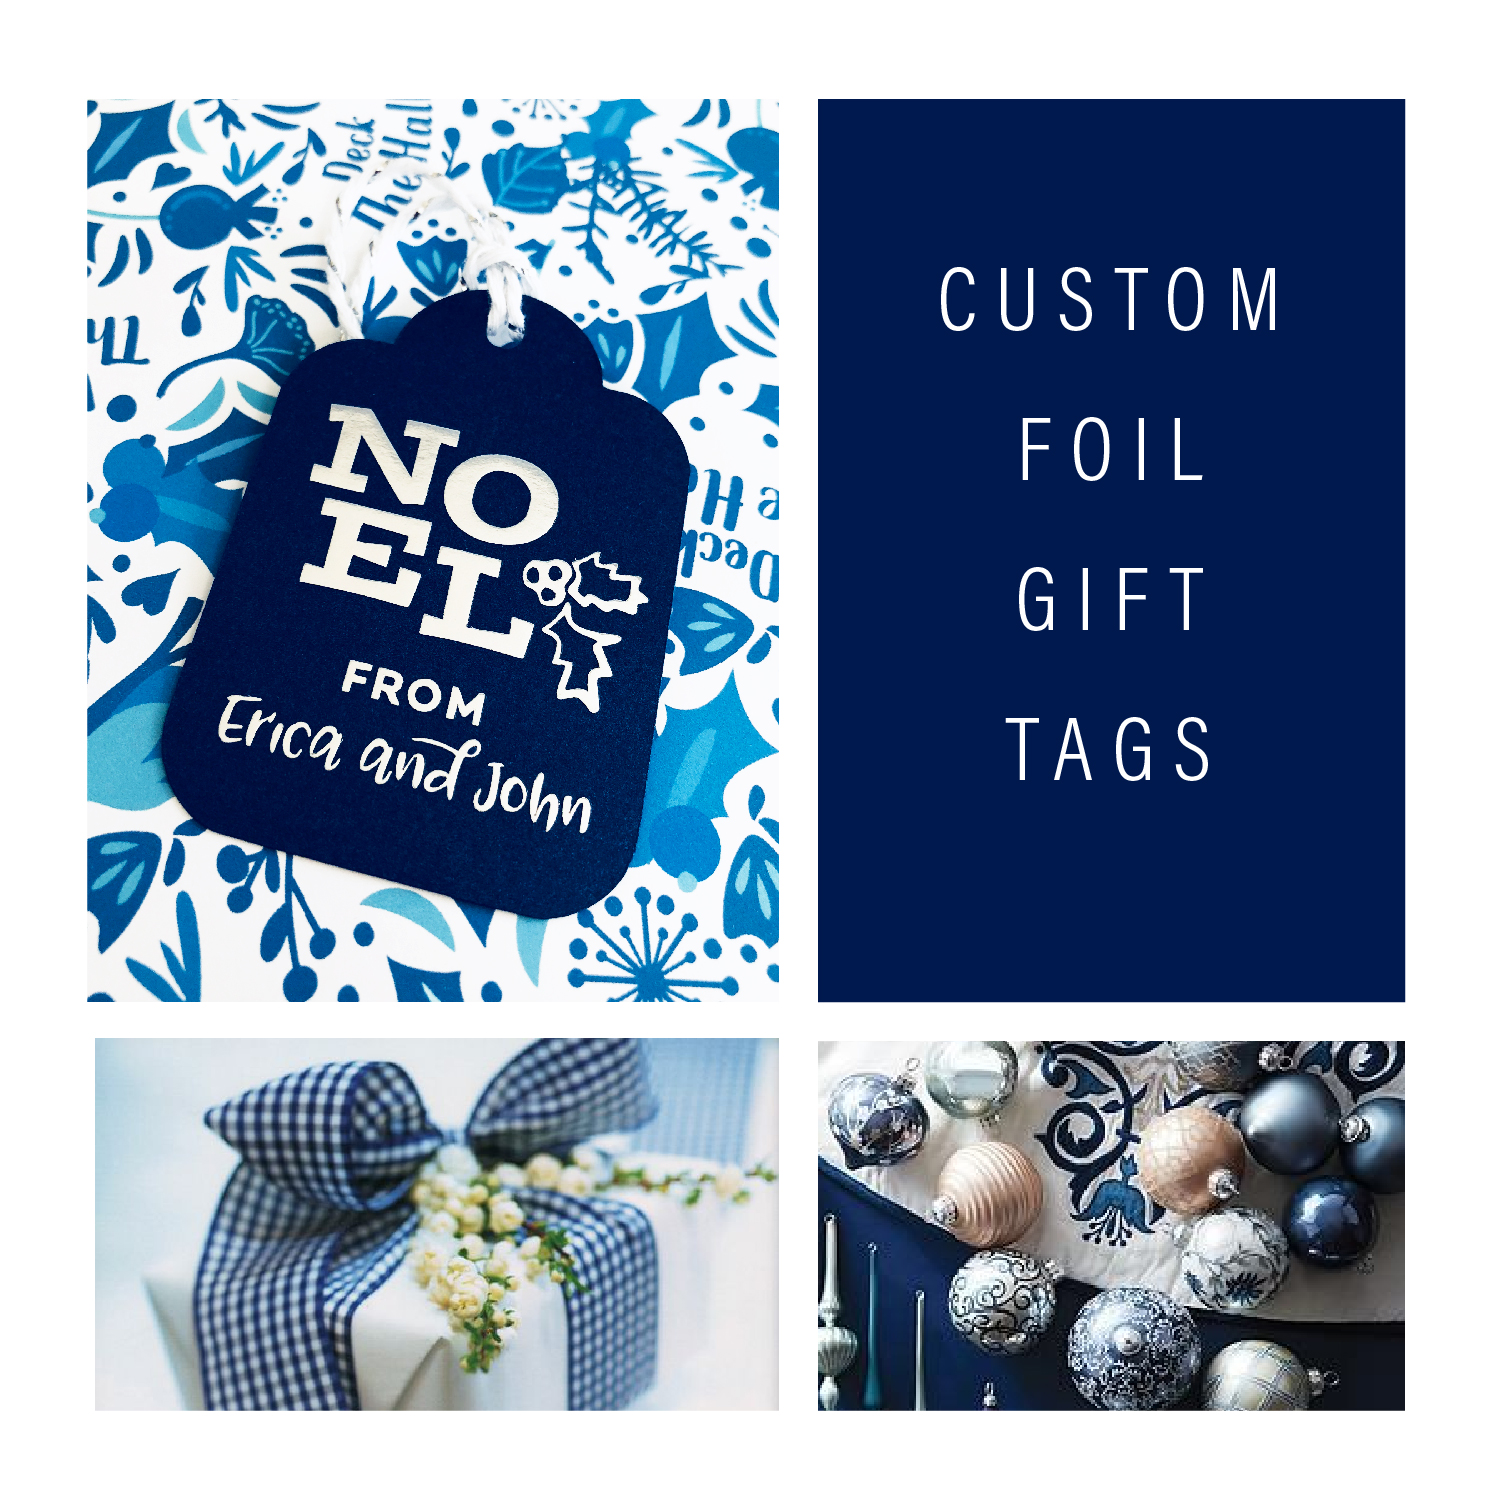 Foil Gift Tags